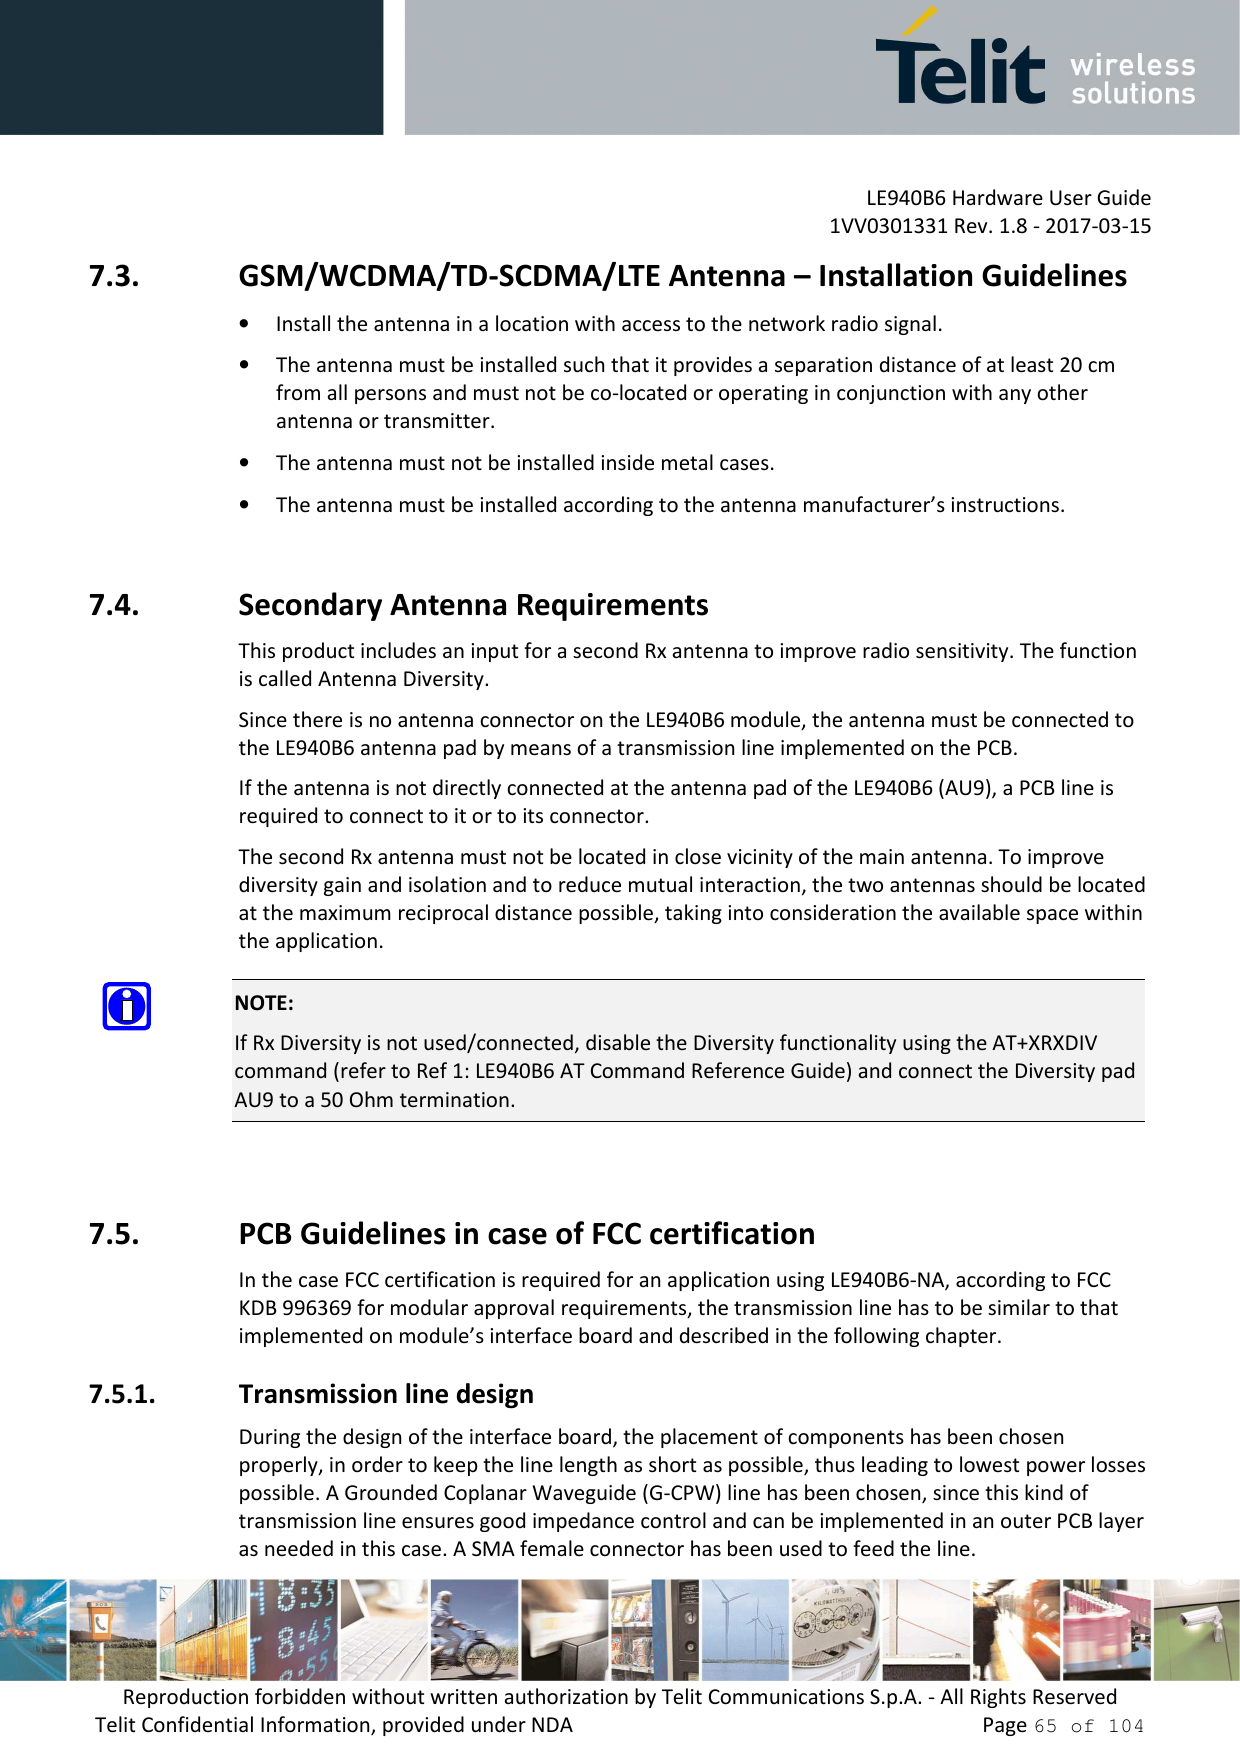 LE940B6 Hardware User Guide     1VV0301331 Rev. 1.8 - 2017-03-15 Reproduction forbidden without written authorization by Telit Communications S.p.A. - All Rights Reserved Telit Confidential Information, provided under NDA                 Page 65 of 104 7.3. GSM/WCDMA/TD-SCDMA/LTE Antenna – Installation Guidelines • Install the antenna in a location with access to the network radio signal. • The antenna must be installed such that it provides a separation distance of at least 20 cm from all persons and must not be co-located or operating in conjunction with any other antenna or transmitter. • The antenna must not be installed inside metal cases.  • The antenna must be installed according to the antenna manufacturer's instructions.  7.4. Secondary Antenna Requirements This product includes an input for a second Rx antenna to improve radio sensitivity. The function is called Antenna Diversity. Since there is no antenna connector on the LE940B6 module, the antenna must be connected to the LE940B6 antenna pad by means of a transmission line implemented on the PCB. If the antenna is not directly connected at the antenna pad of the LE940B6 (AU9), a PCB line is required to connect to it or to its connector. The second Rx antenna must not be located in close vicinity of the main antenna. To improve diversity gain and isolation and to reduce mutual interaction, the two antennas should be located at the maximum reciprocal distance possible, taking into consideration the available space within the application.  NOTE: If Rx Diversity is not used/connected, disable the Diversity functionality using the AT+XRXDIV command (refer to Ref 1: LE940B6 AT Command Reference Guide) and connect the Diversity pad AU9 to a 50 Ohm termination.  7.5. PCB Guidelines in case of FCC certification In the case FCC certification is required for an application using LE940B6-NA, according to FCC KDB 996369 for modular approval requirements, the transmission line has to be similar to that implemented on